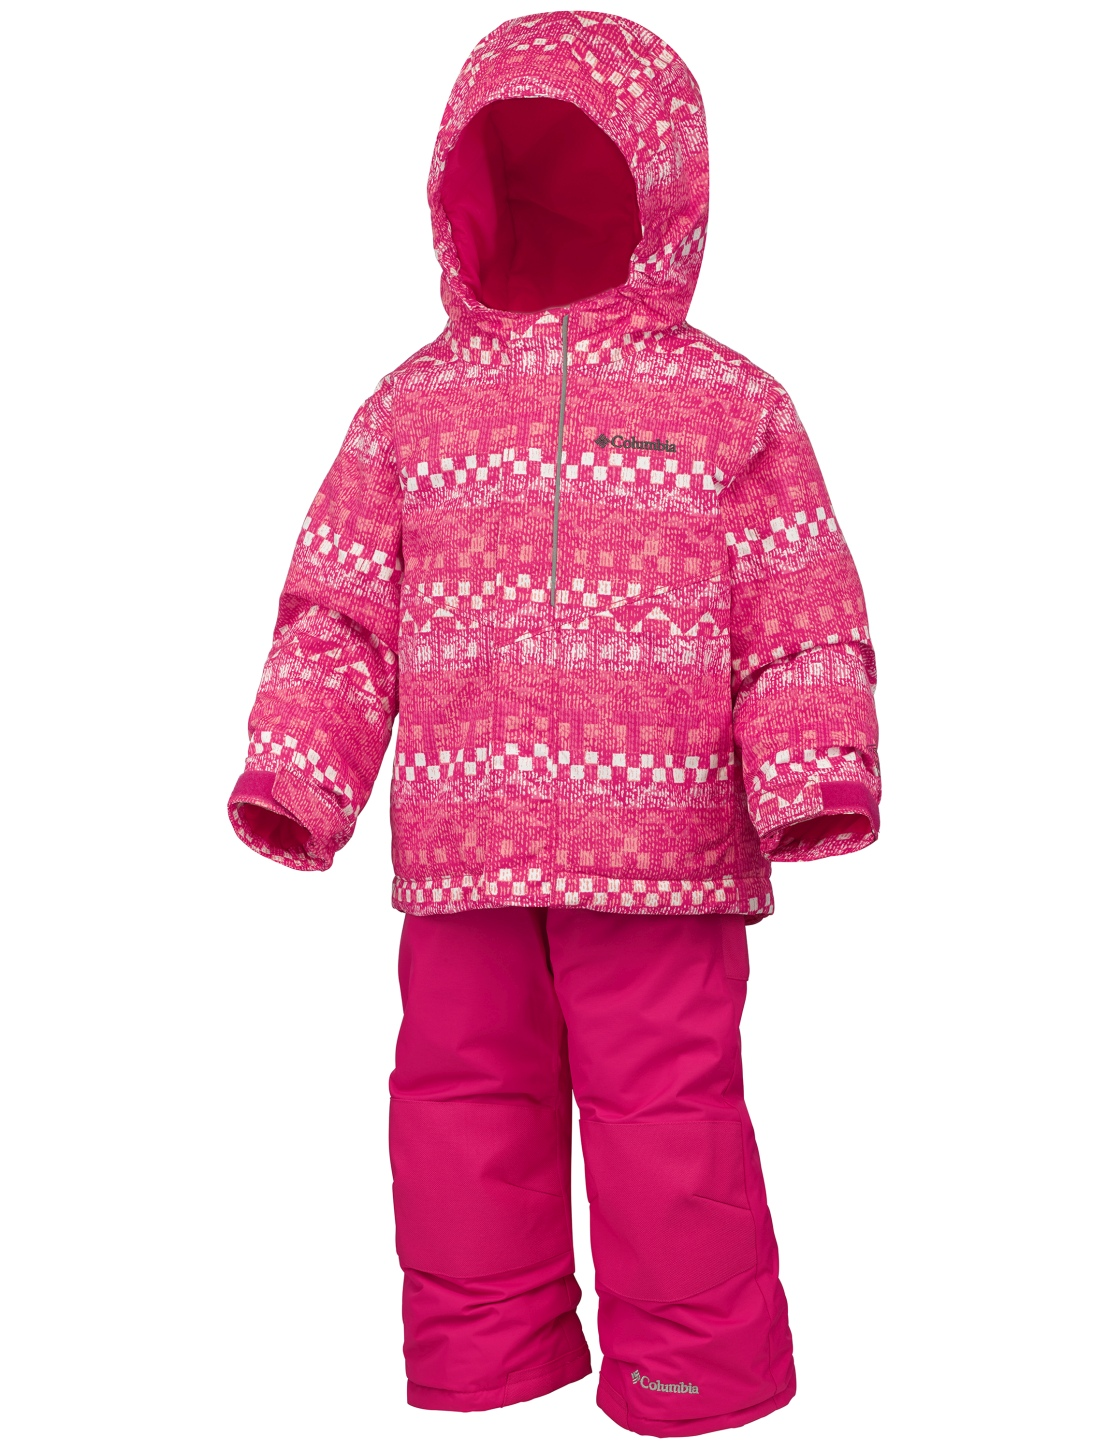 Columbia Boy's Buga Snow Set Punch Pink Fairisle-30